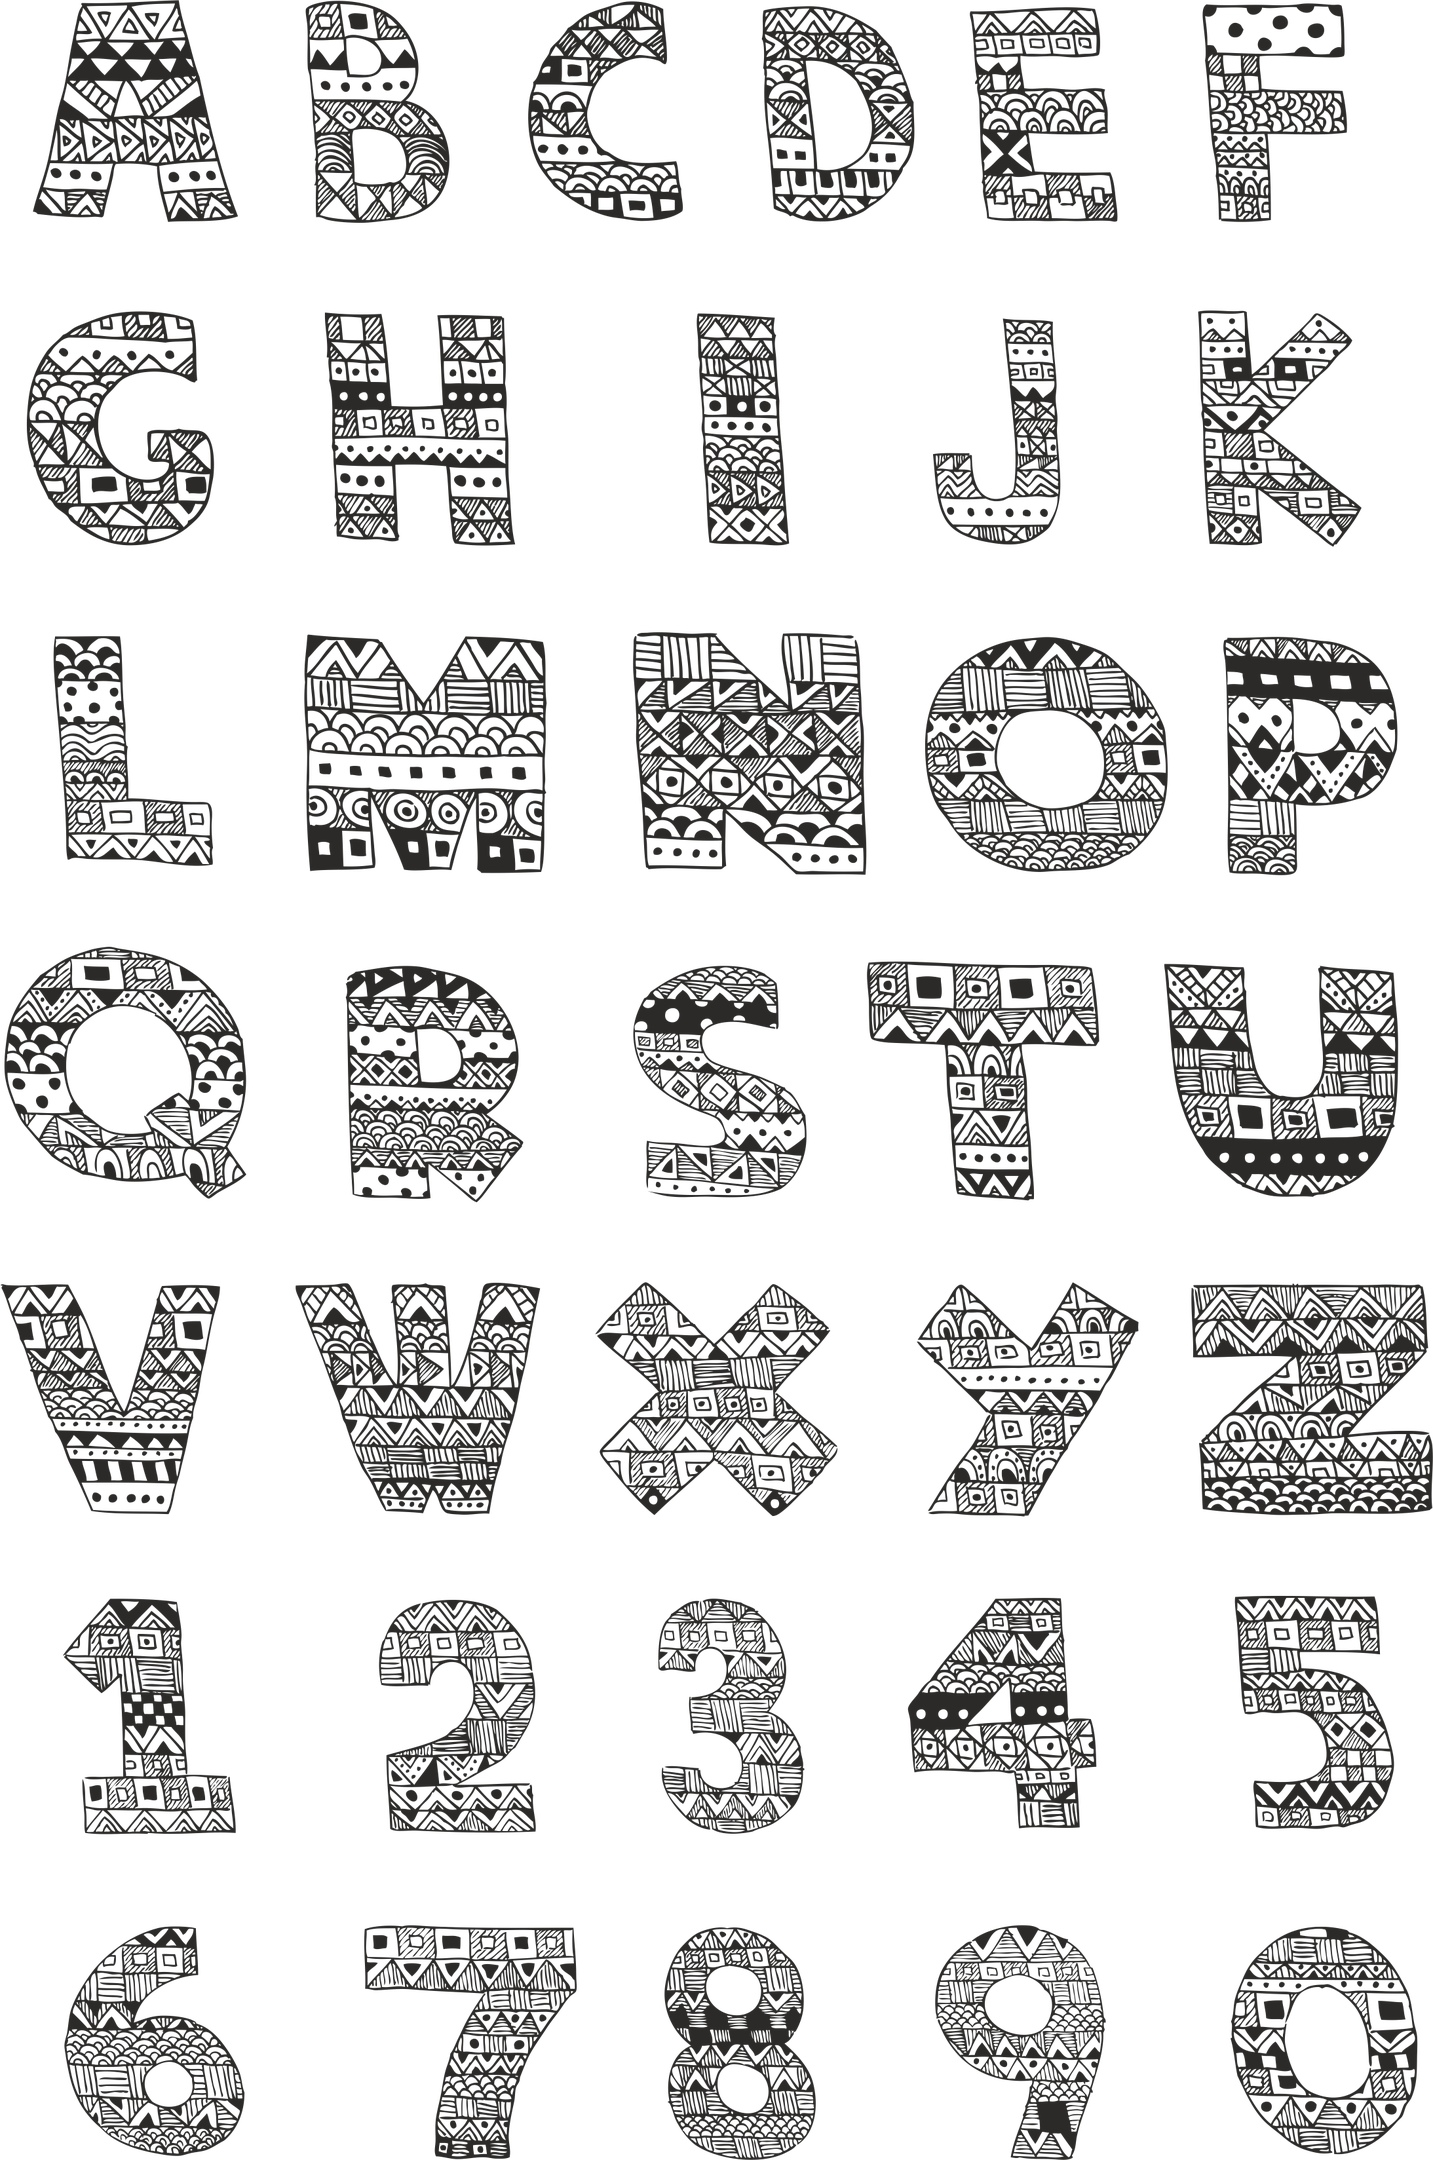 Handdrawn Ornamented Alphabet Pack Free Vector